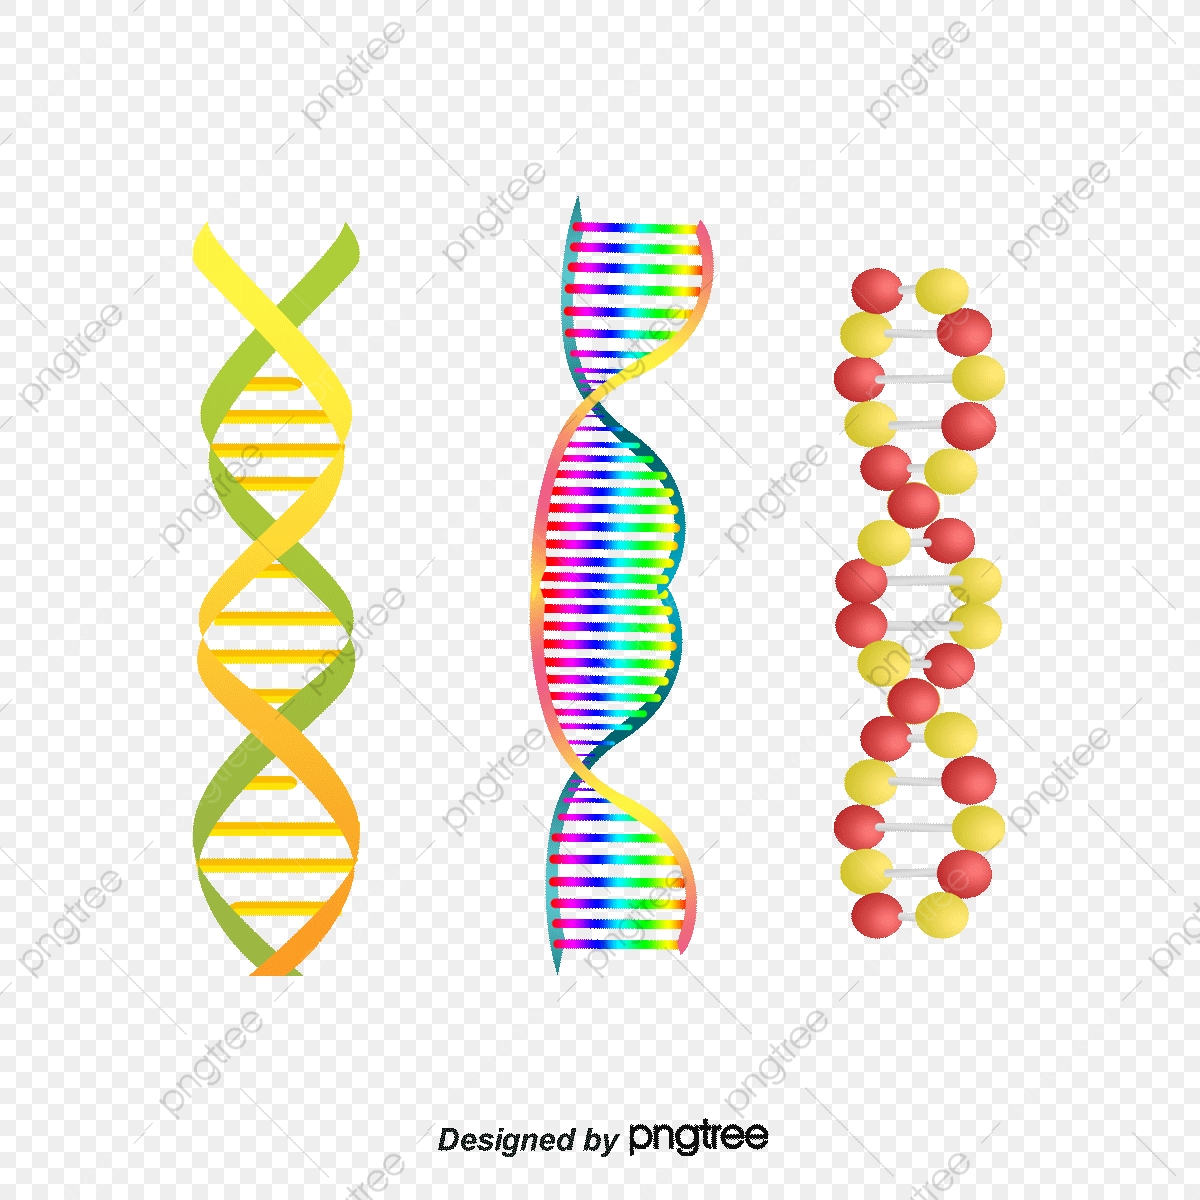 Structure picture biotechnology genetic. Dna clipart biotech